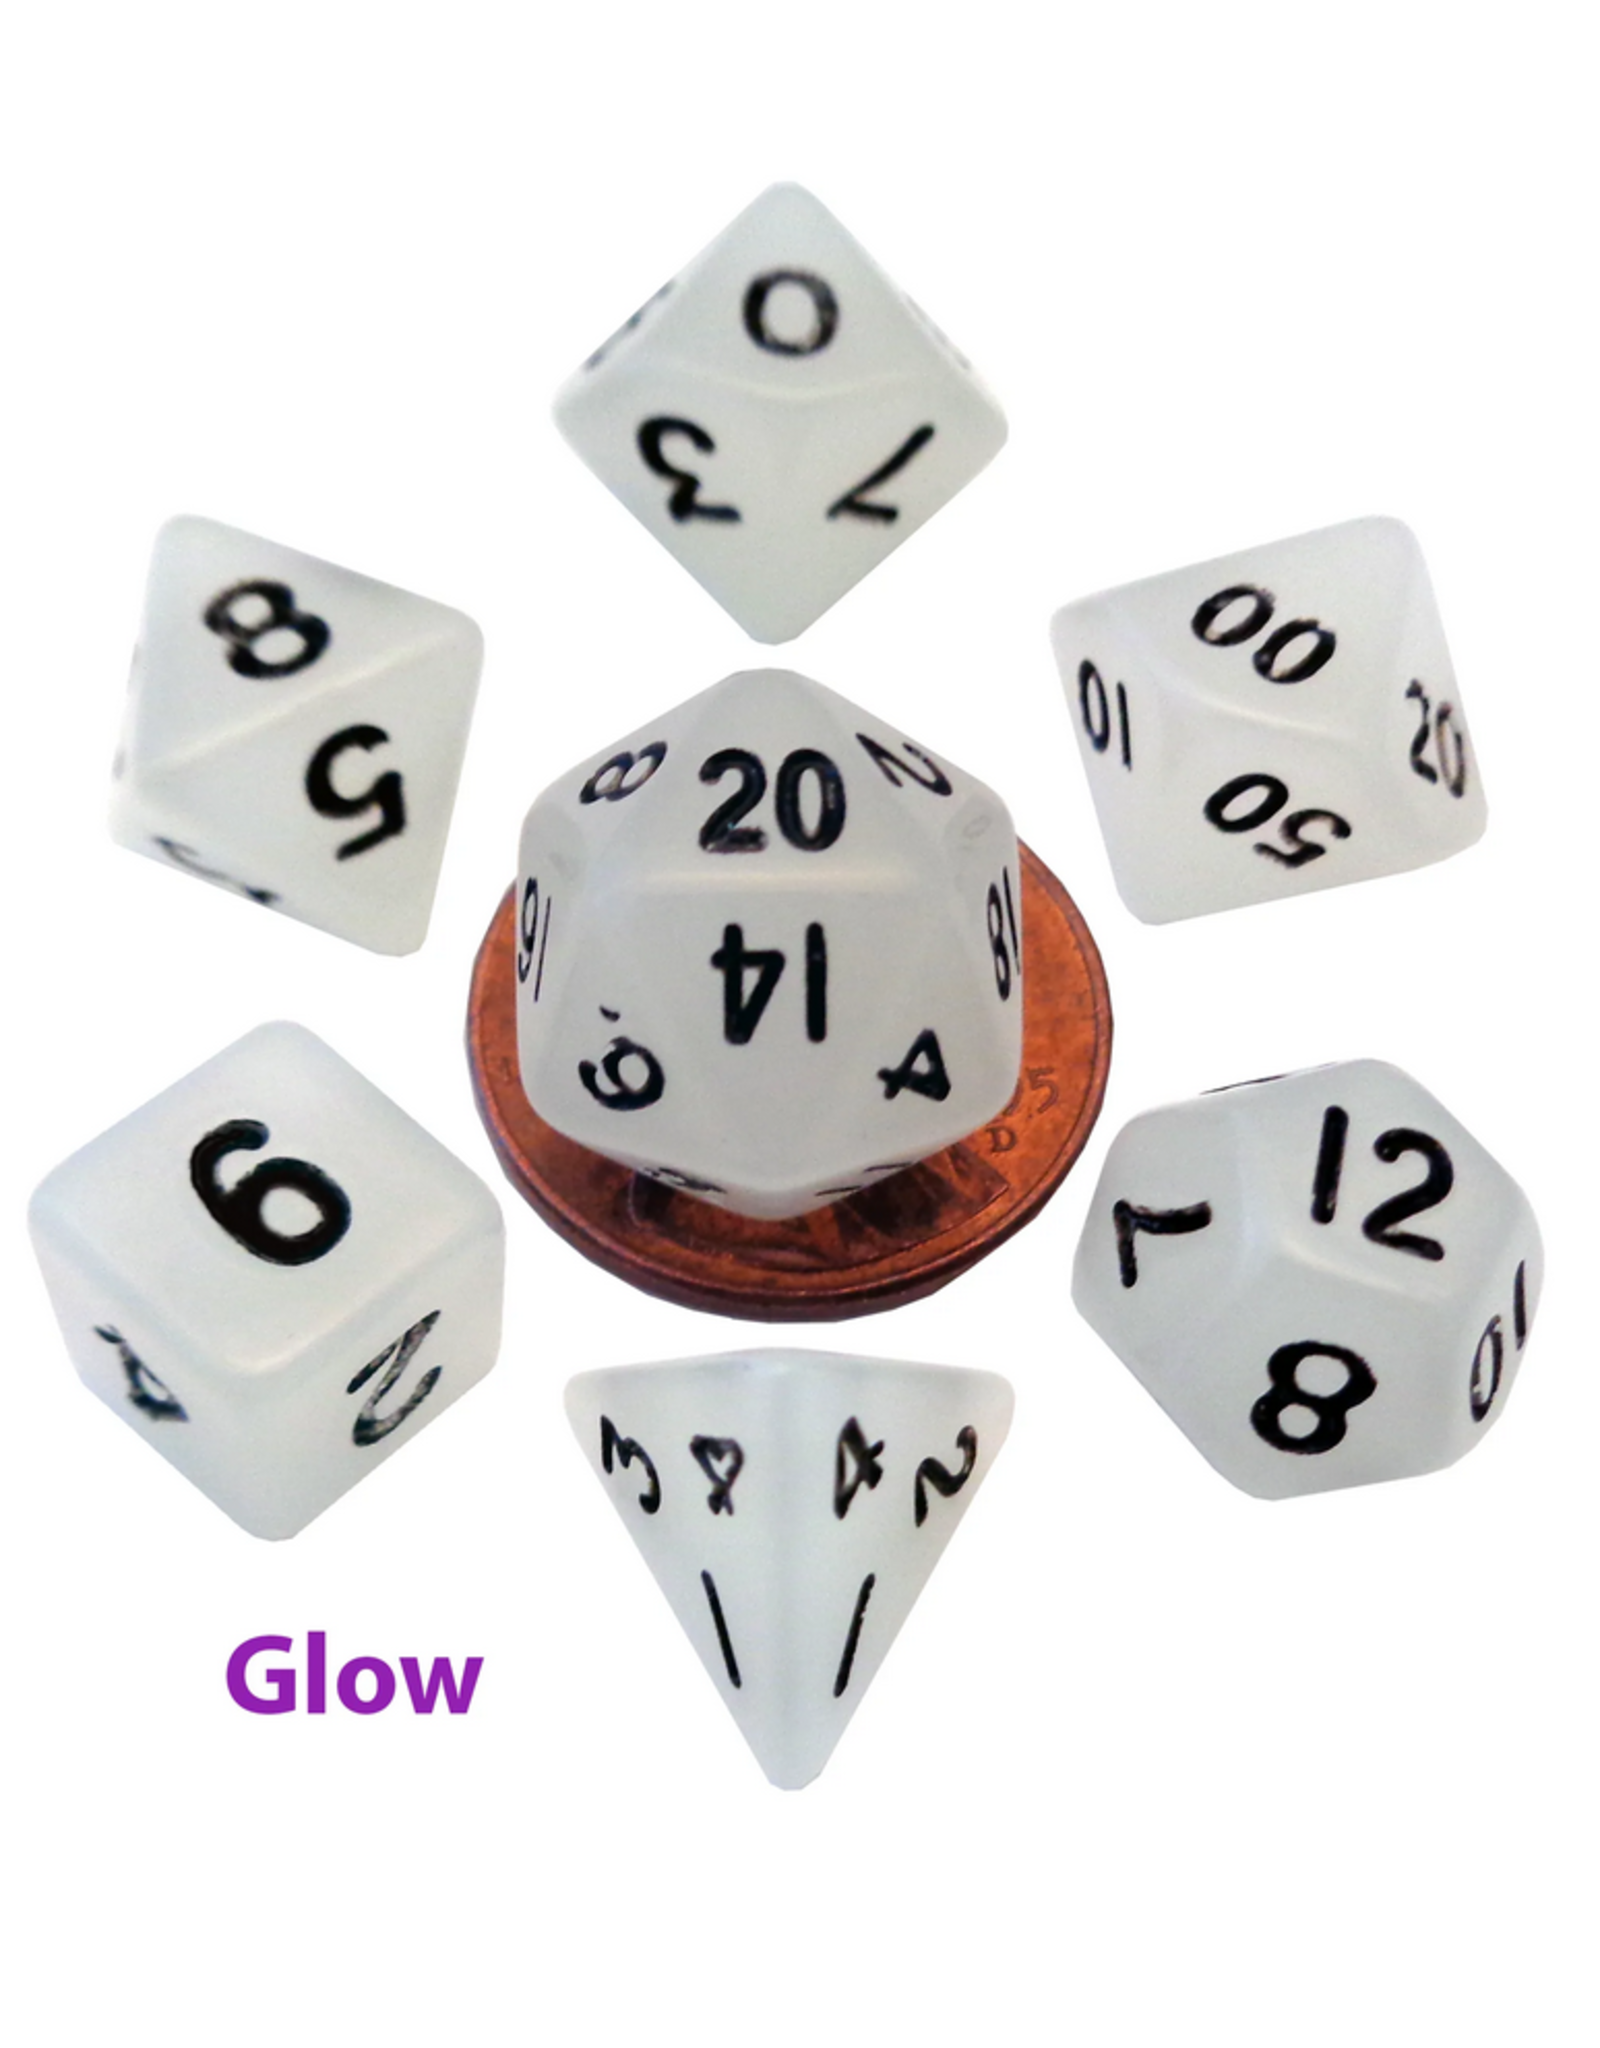 Dice Mini Polyhedral Dice Set: Glow Clear with Black Numbers